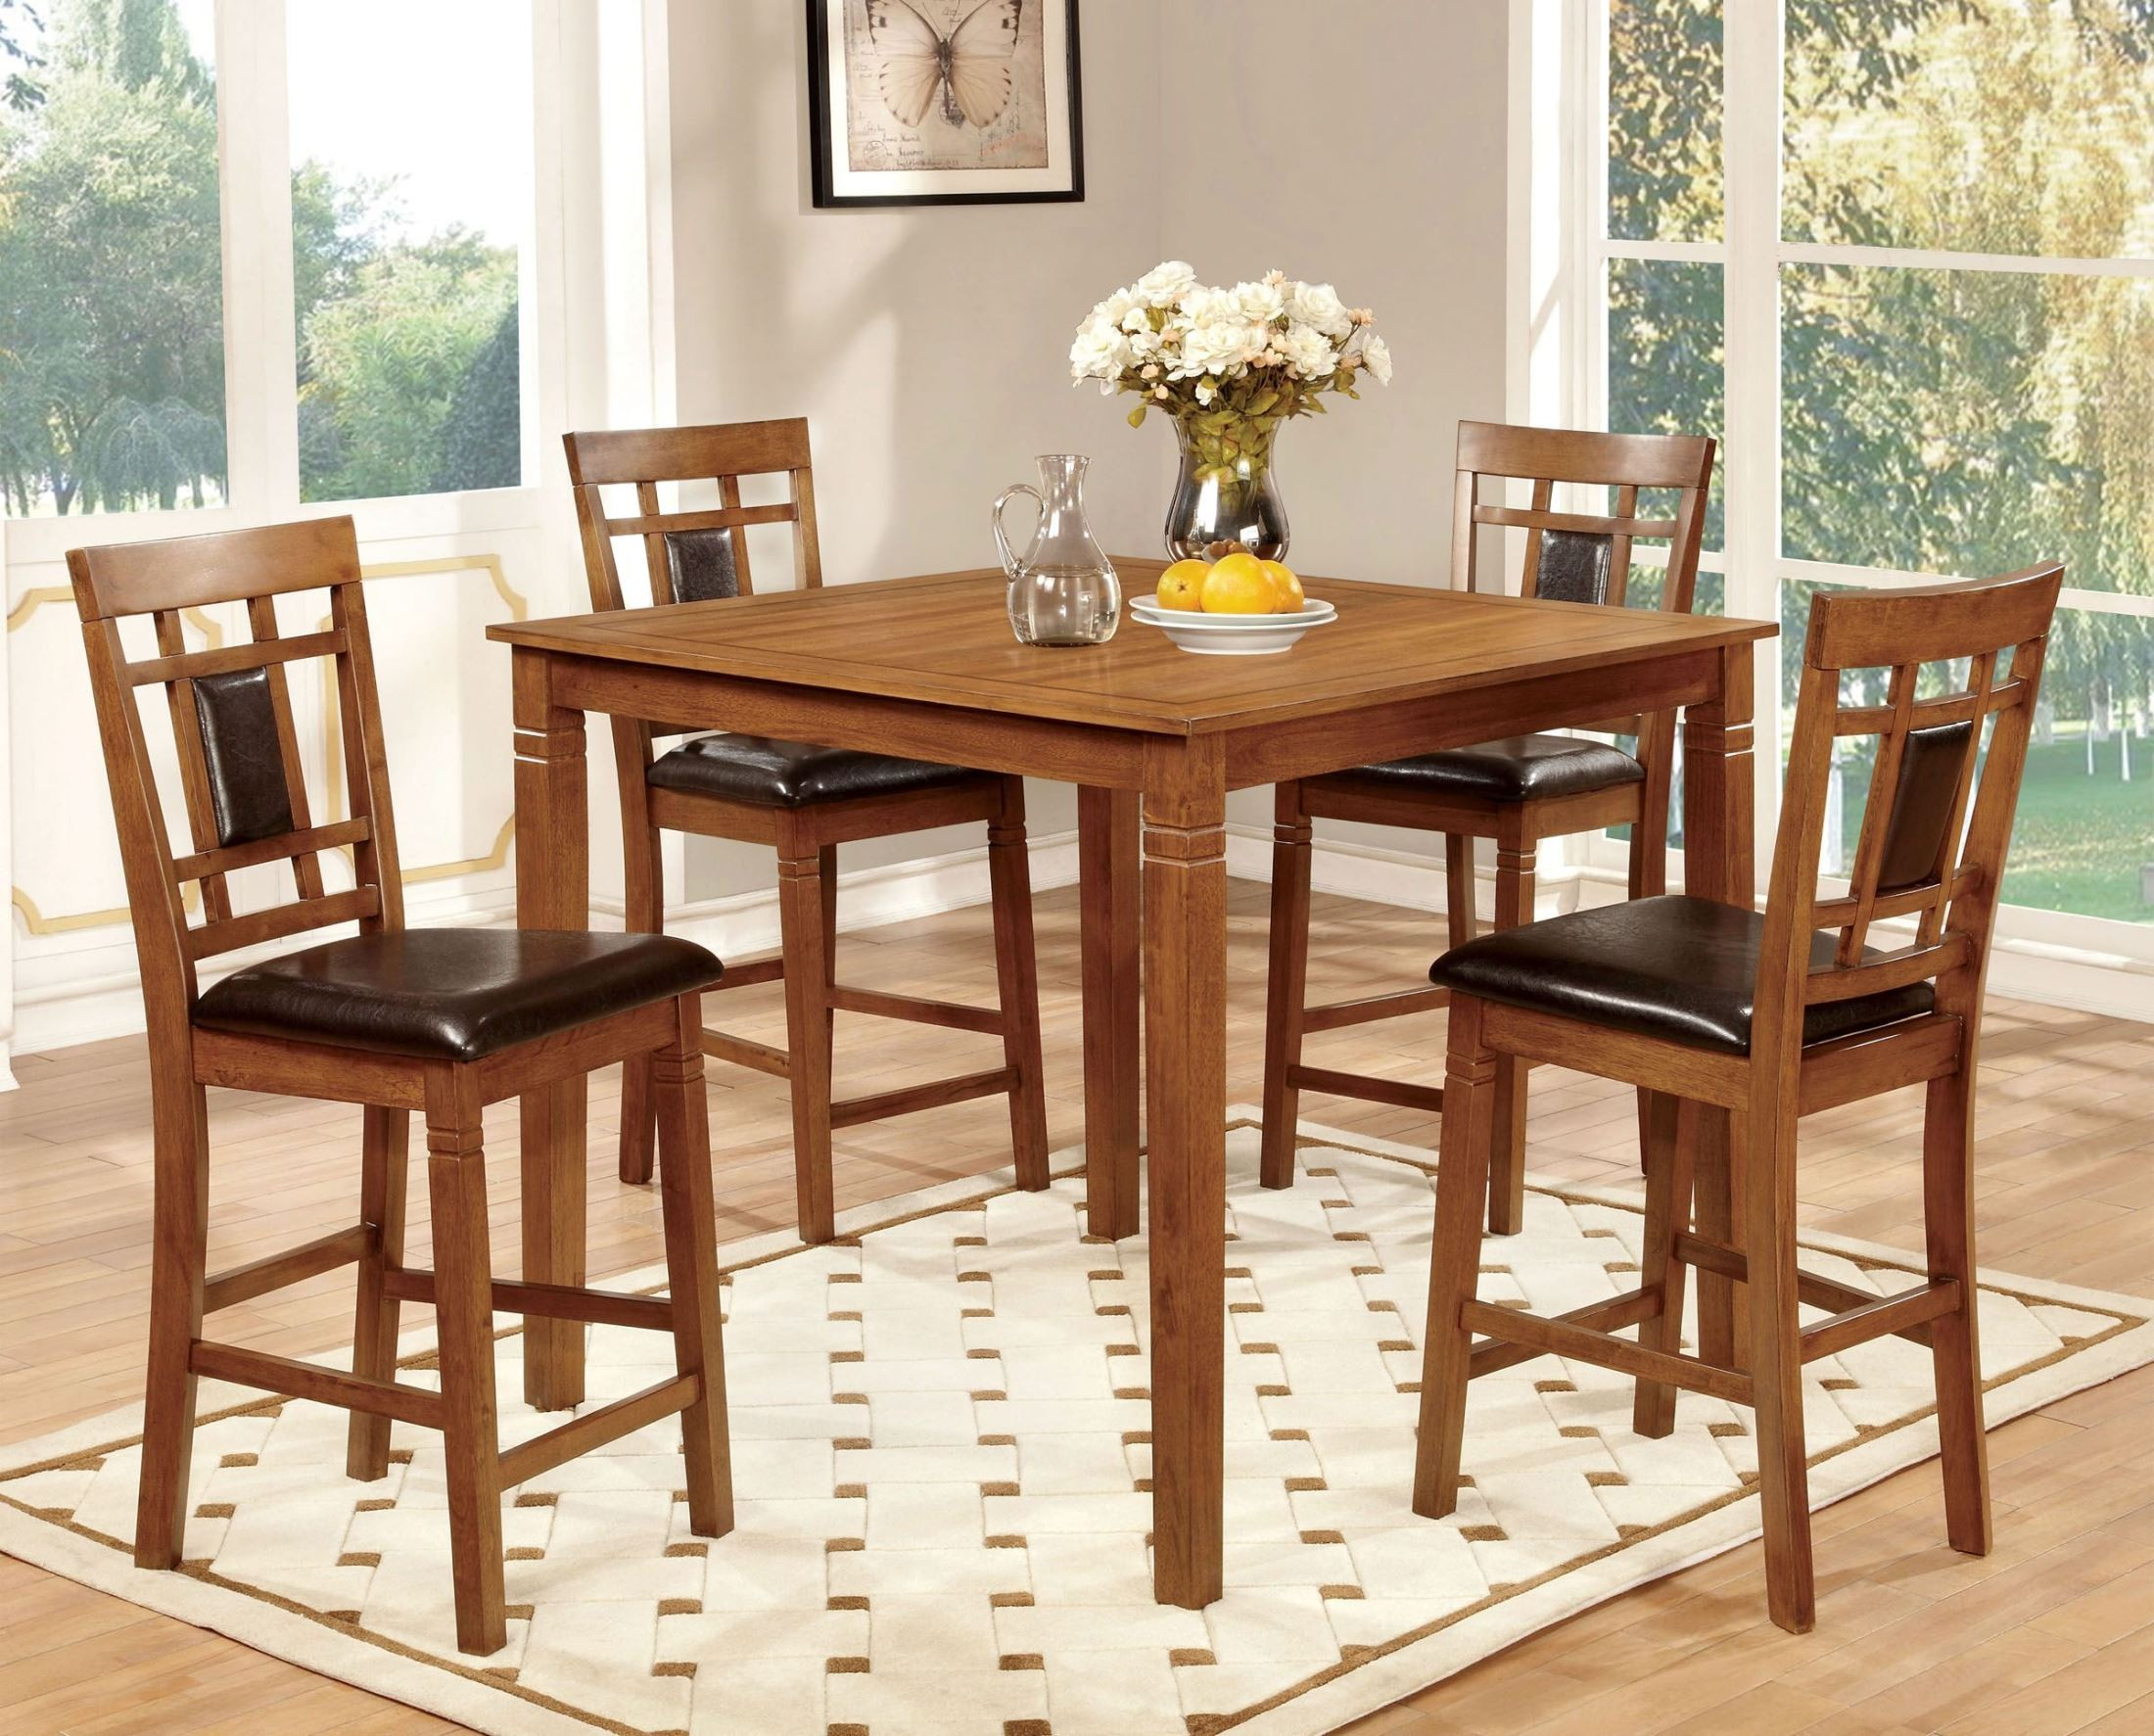 Dining Table Light Height: Freeman II Light Oak 5 Piece Counter Height Table Set From